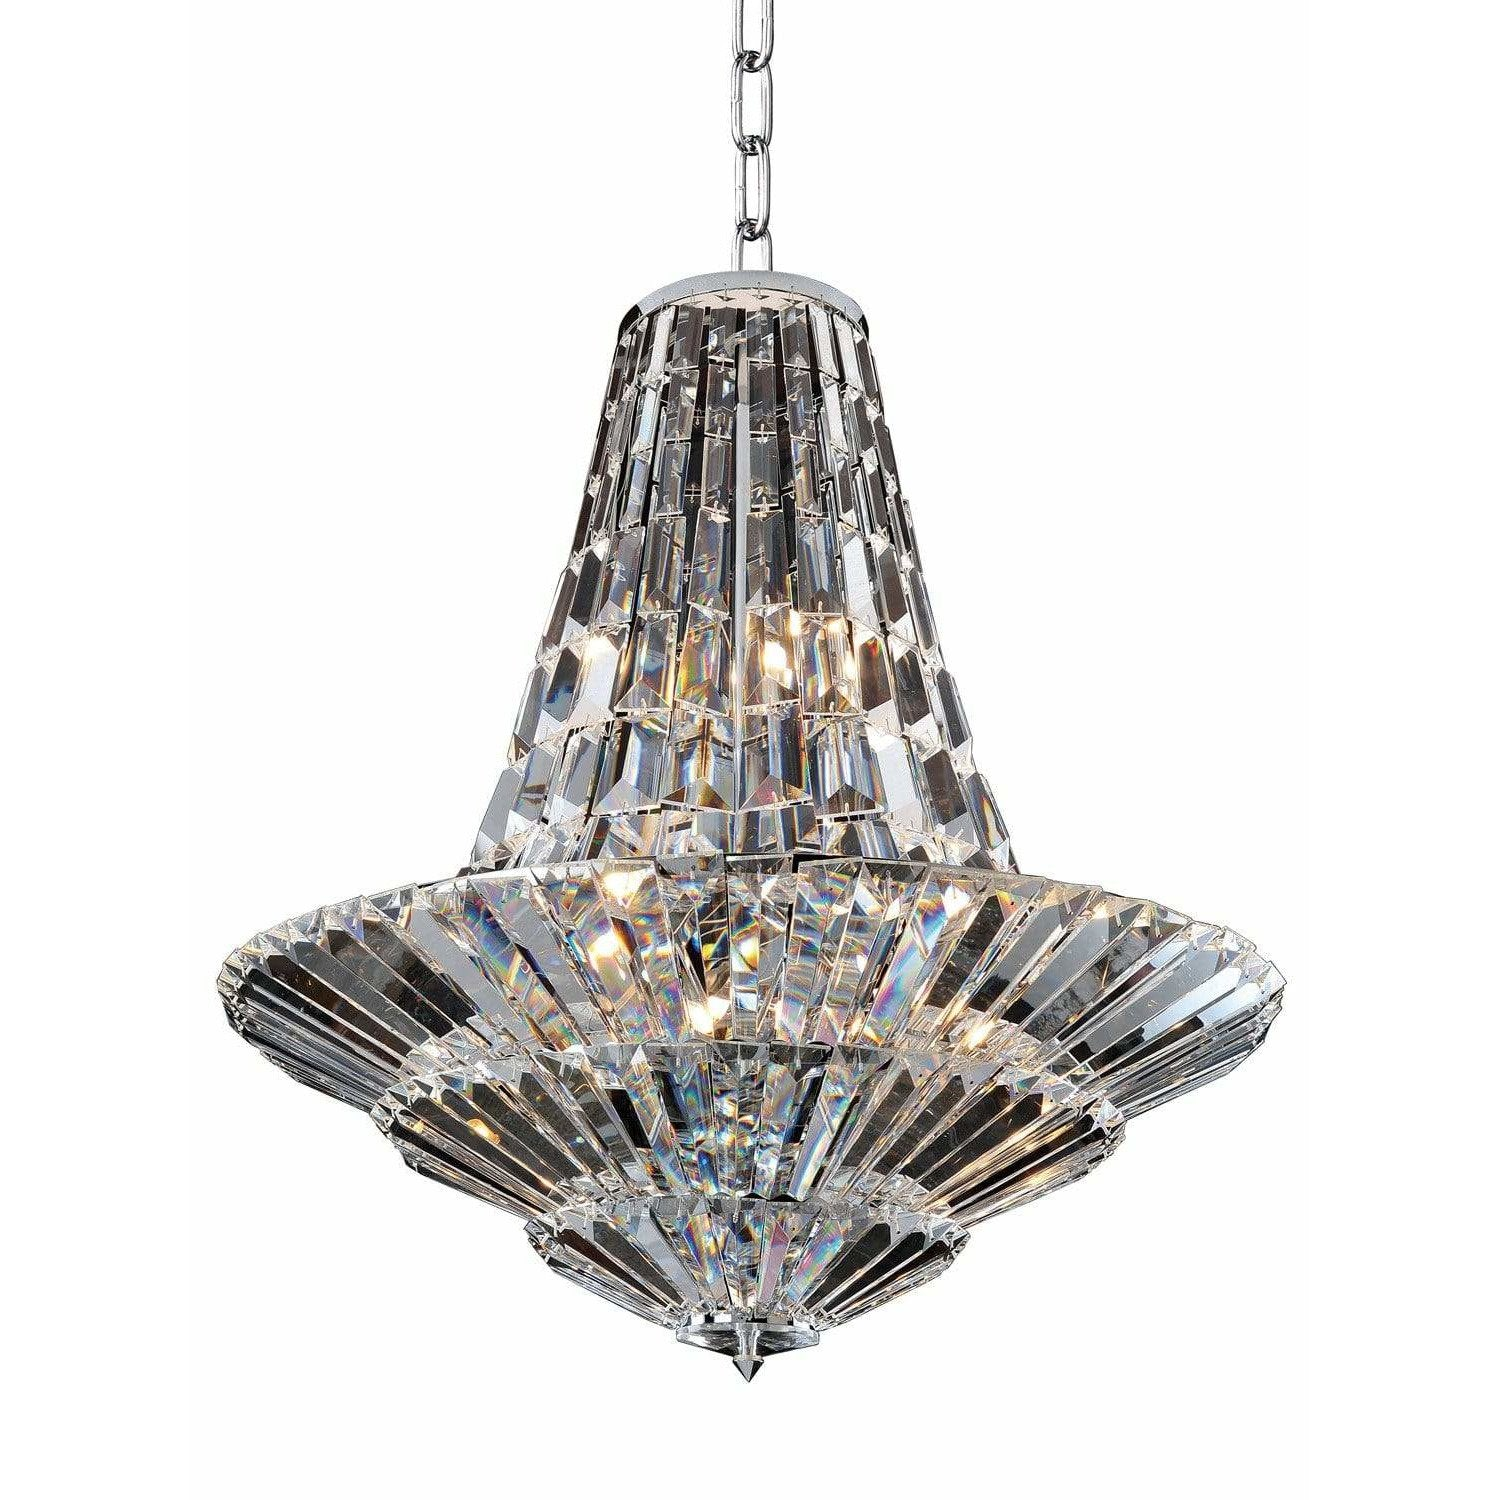 Allegri by Kalco Lighting Chandeliers Chrome / Firenze Clear Auletta 12 Light Chandelier From Allegri by Kalco Lighting 11425